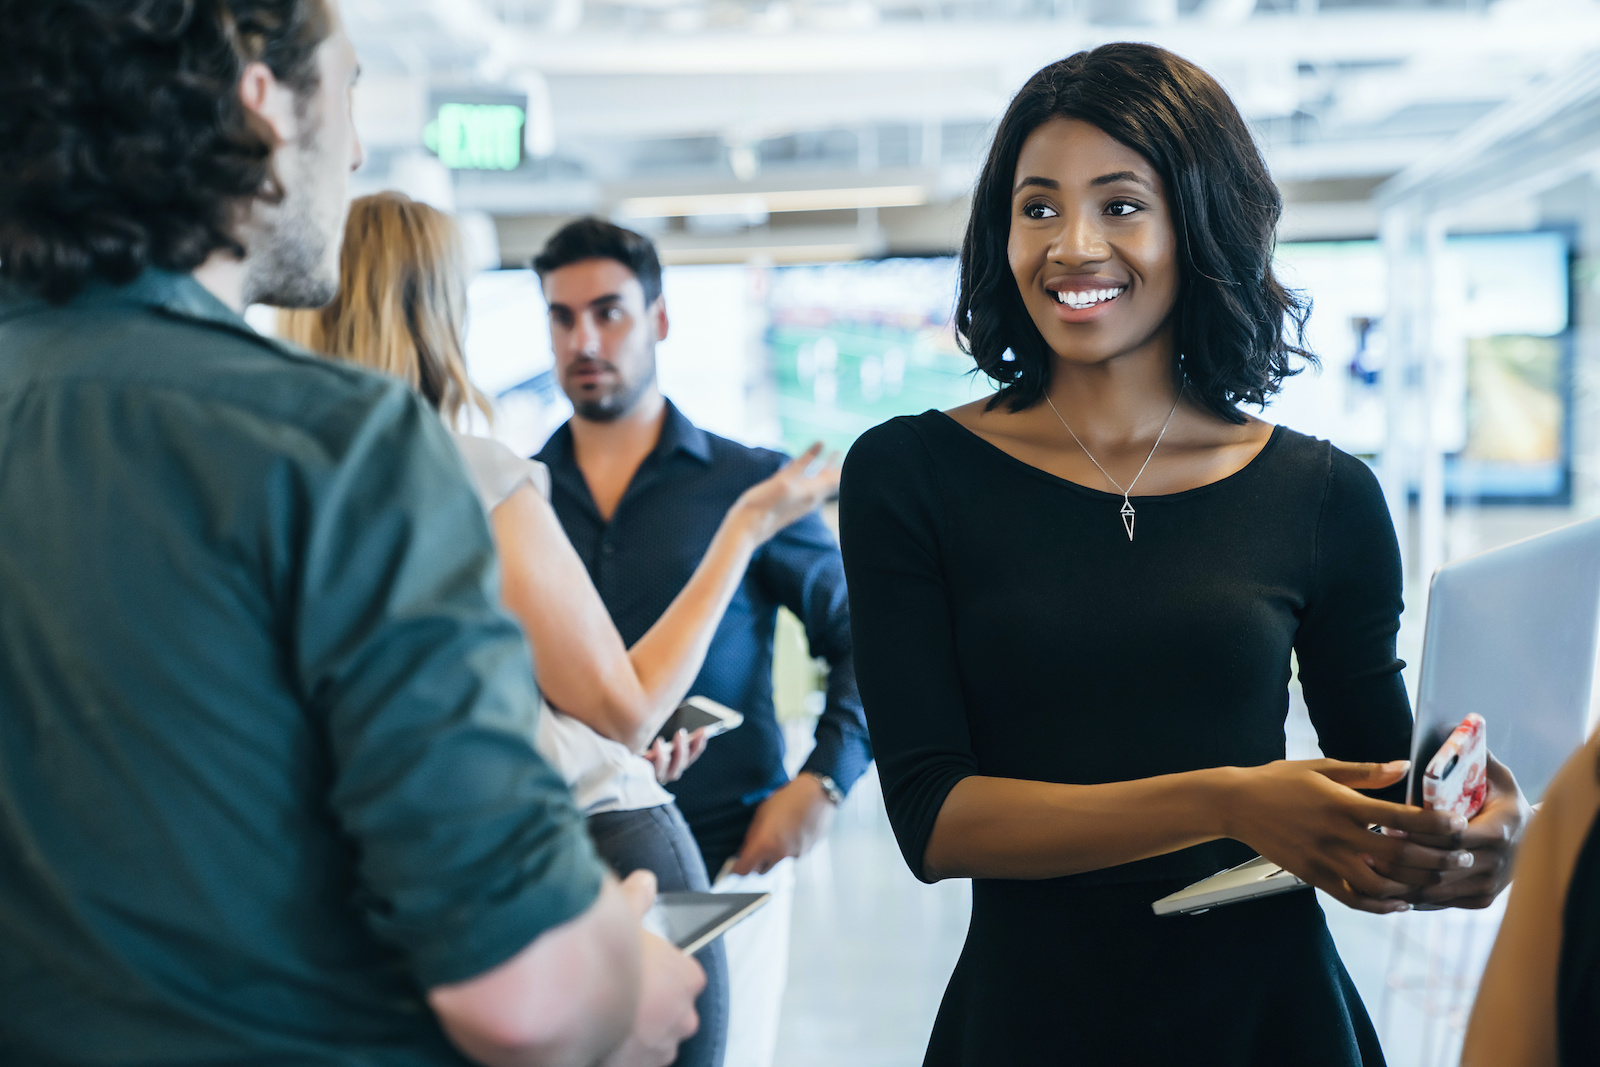 What to do when unemployed: People at a networking event